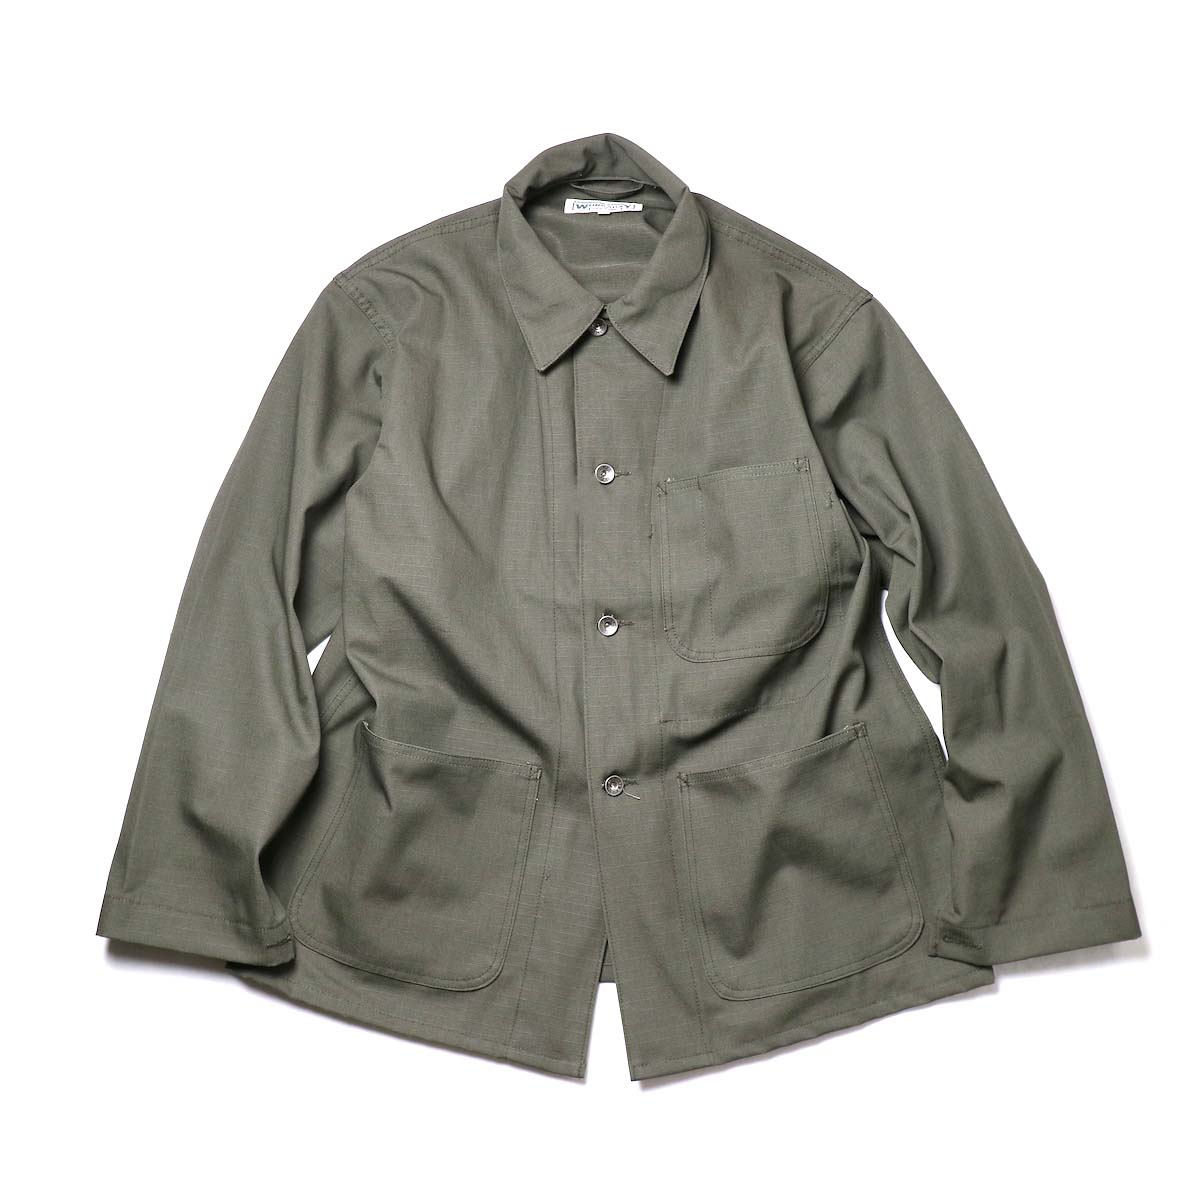 Engineered Garments Workaday / Utility Jacket - Cotton Ripstop (Olive)